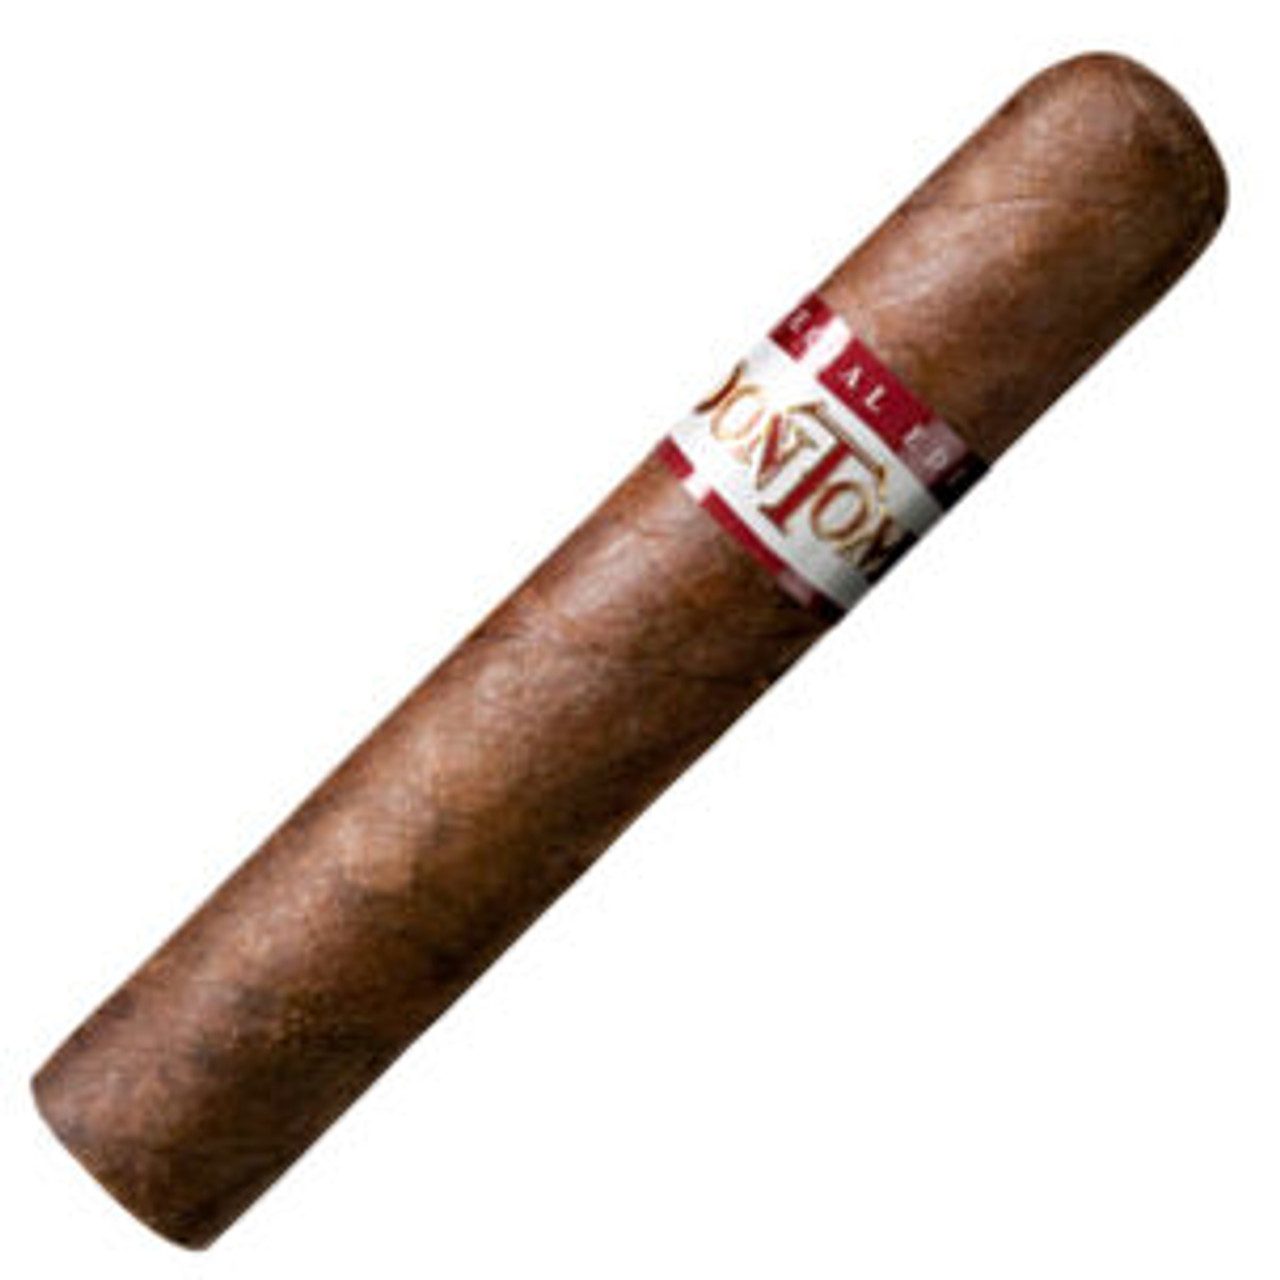 Don Tomas Corojo No. 554 Cigars - 4.5 x 54 (Pack of 5)